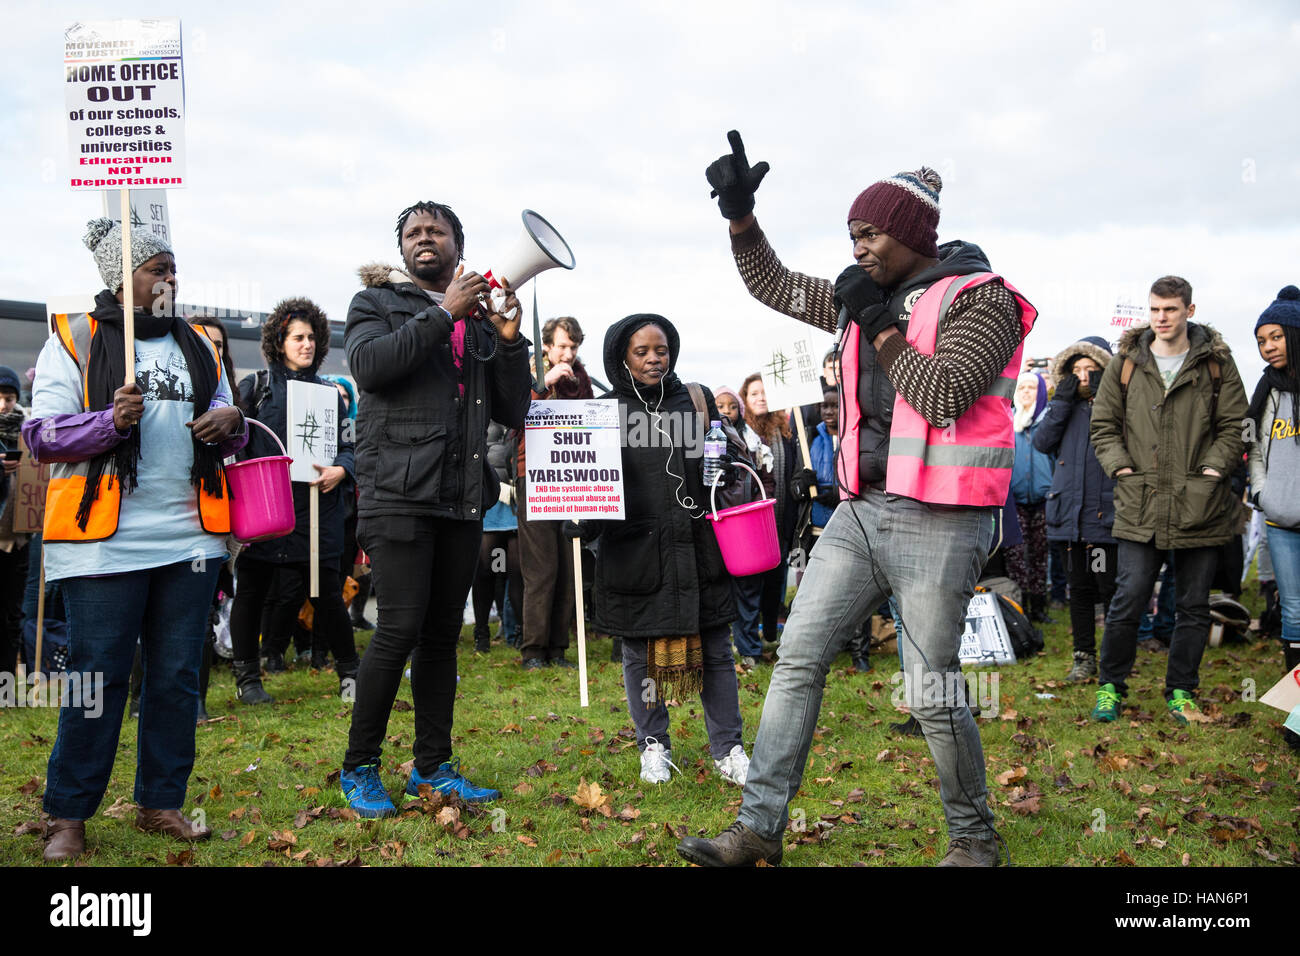 Milton Ernest, UK. 3rd Dec, 2016. Movement for Justice organisers address anti-immigration detention campaigners - Stock Image